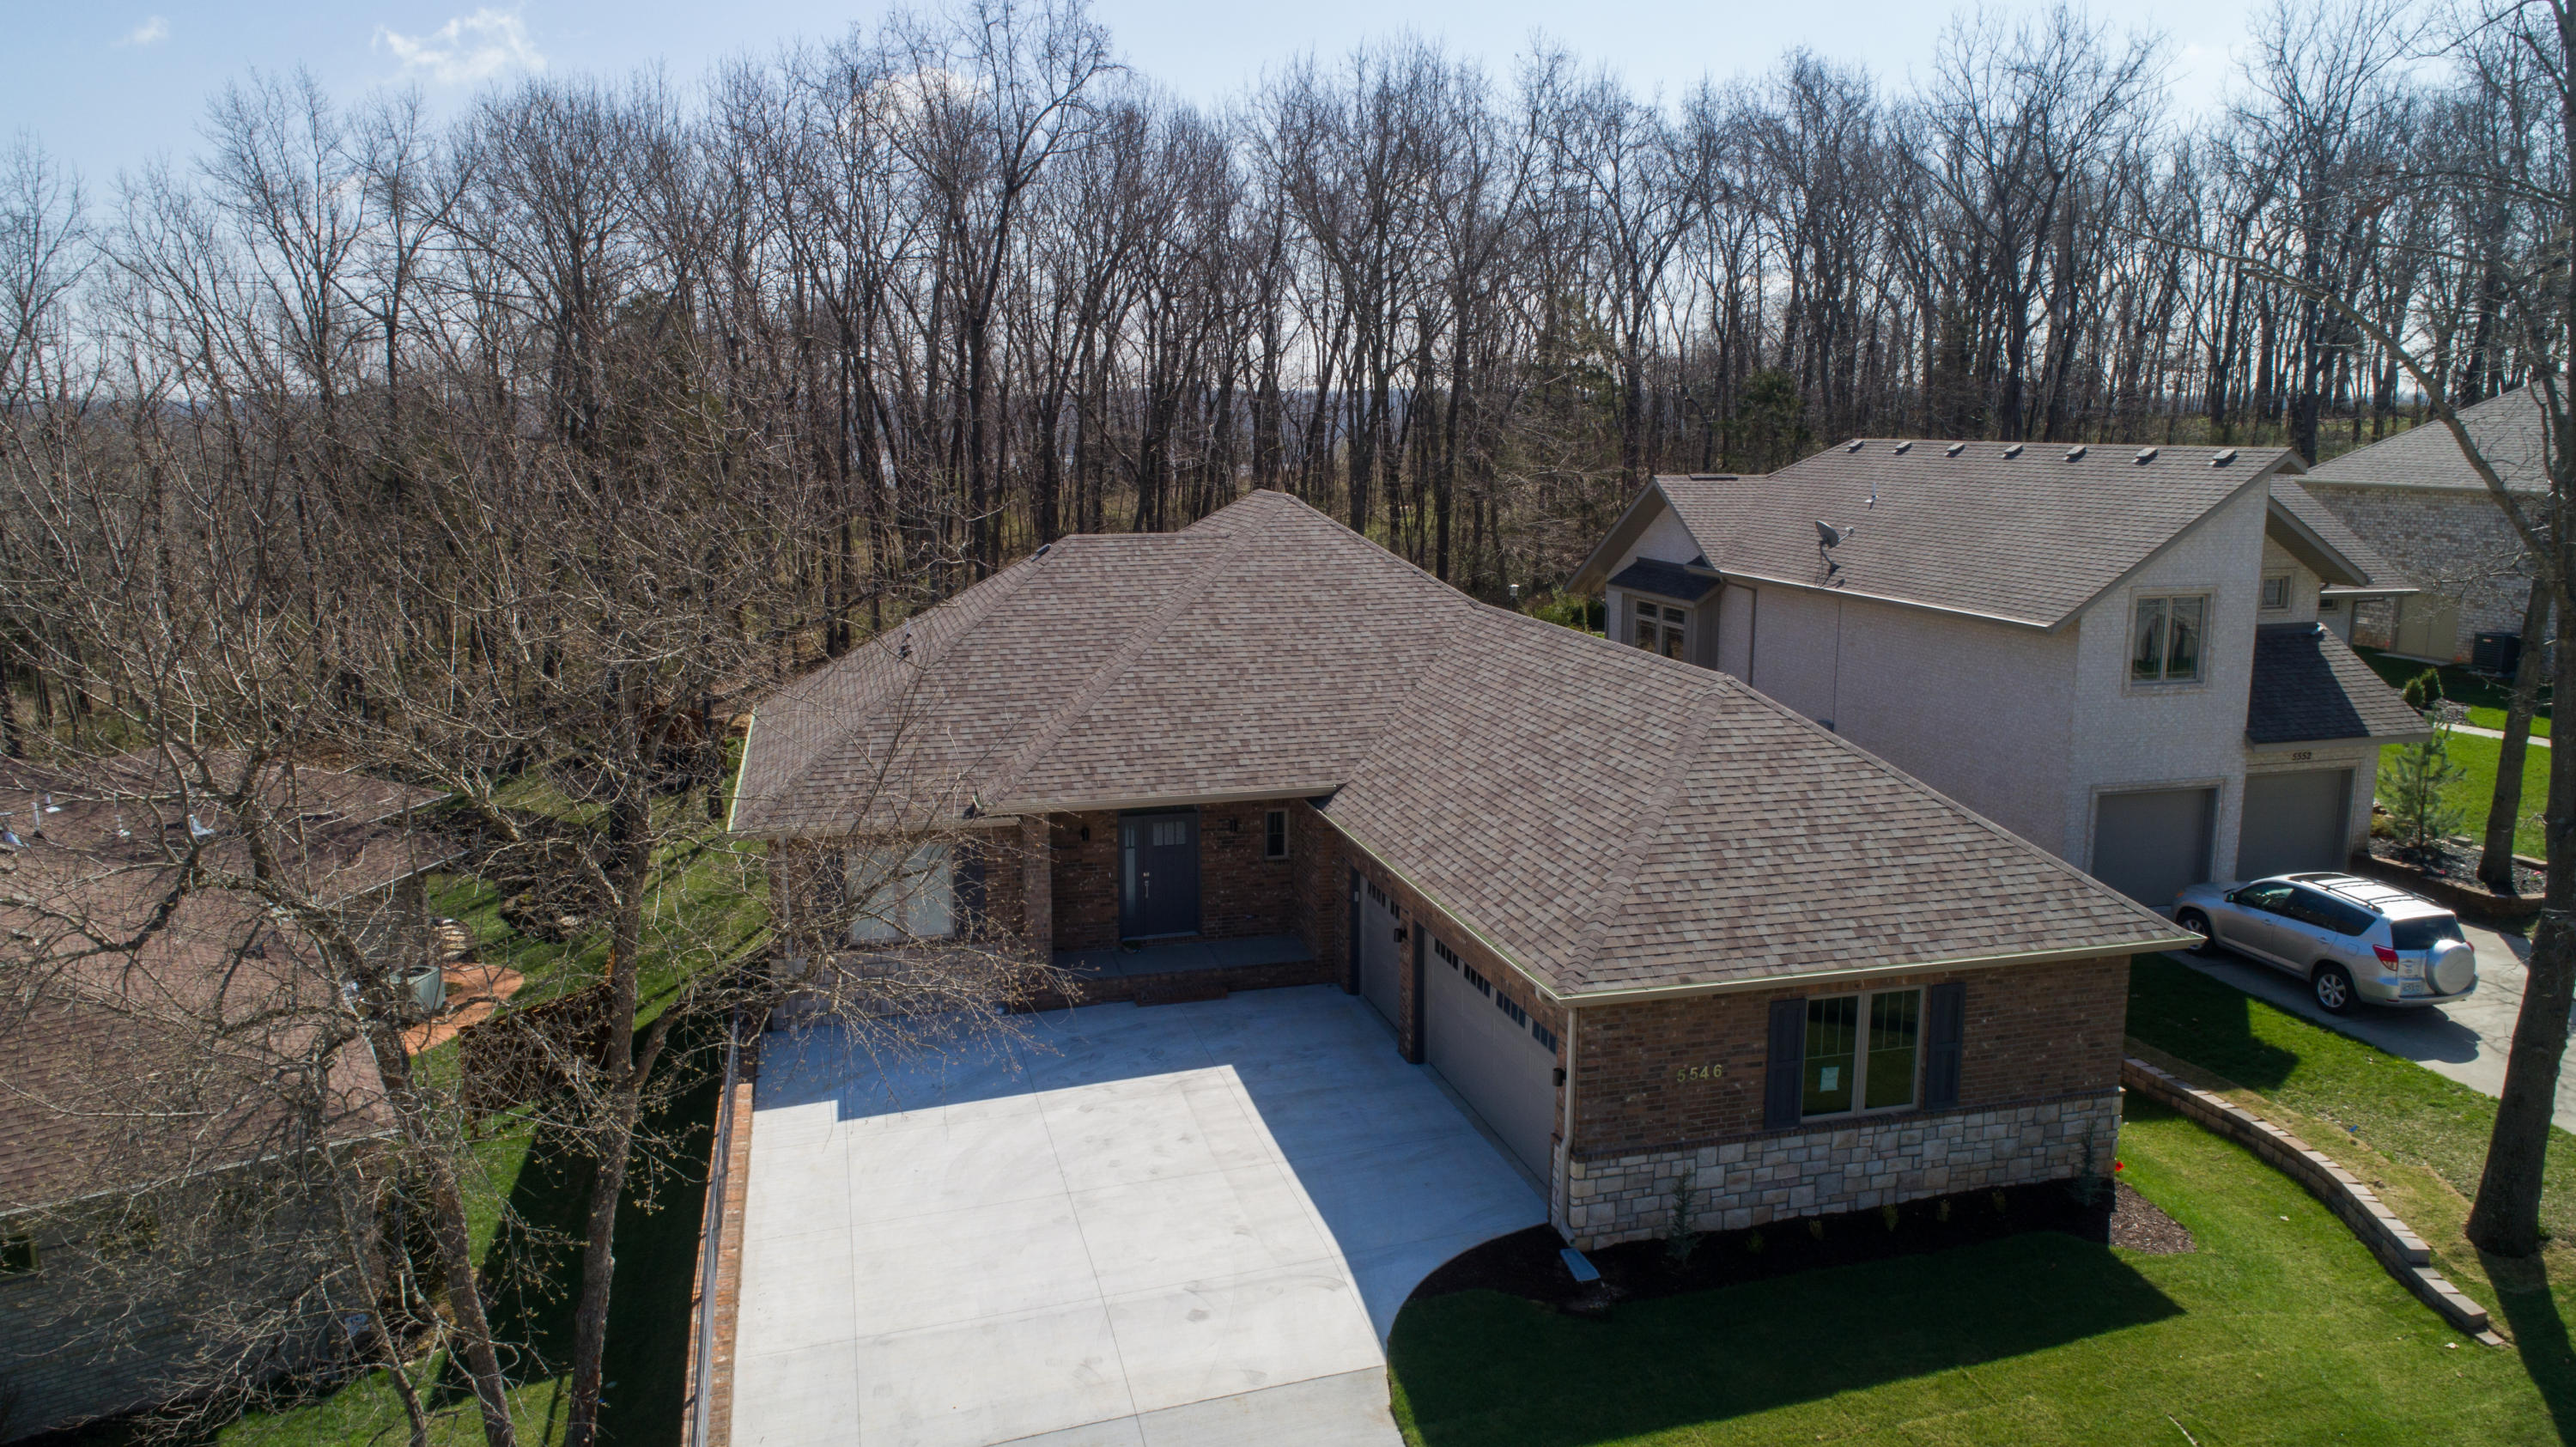 Lot 12 Forest Park Kimberling City, MO 65686